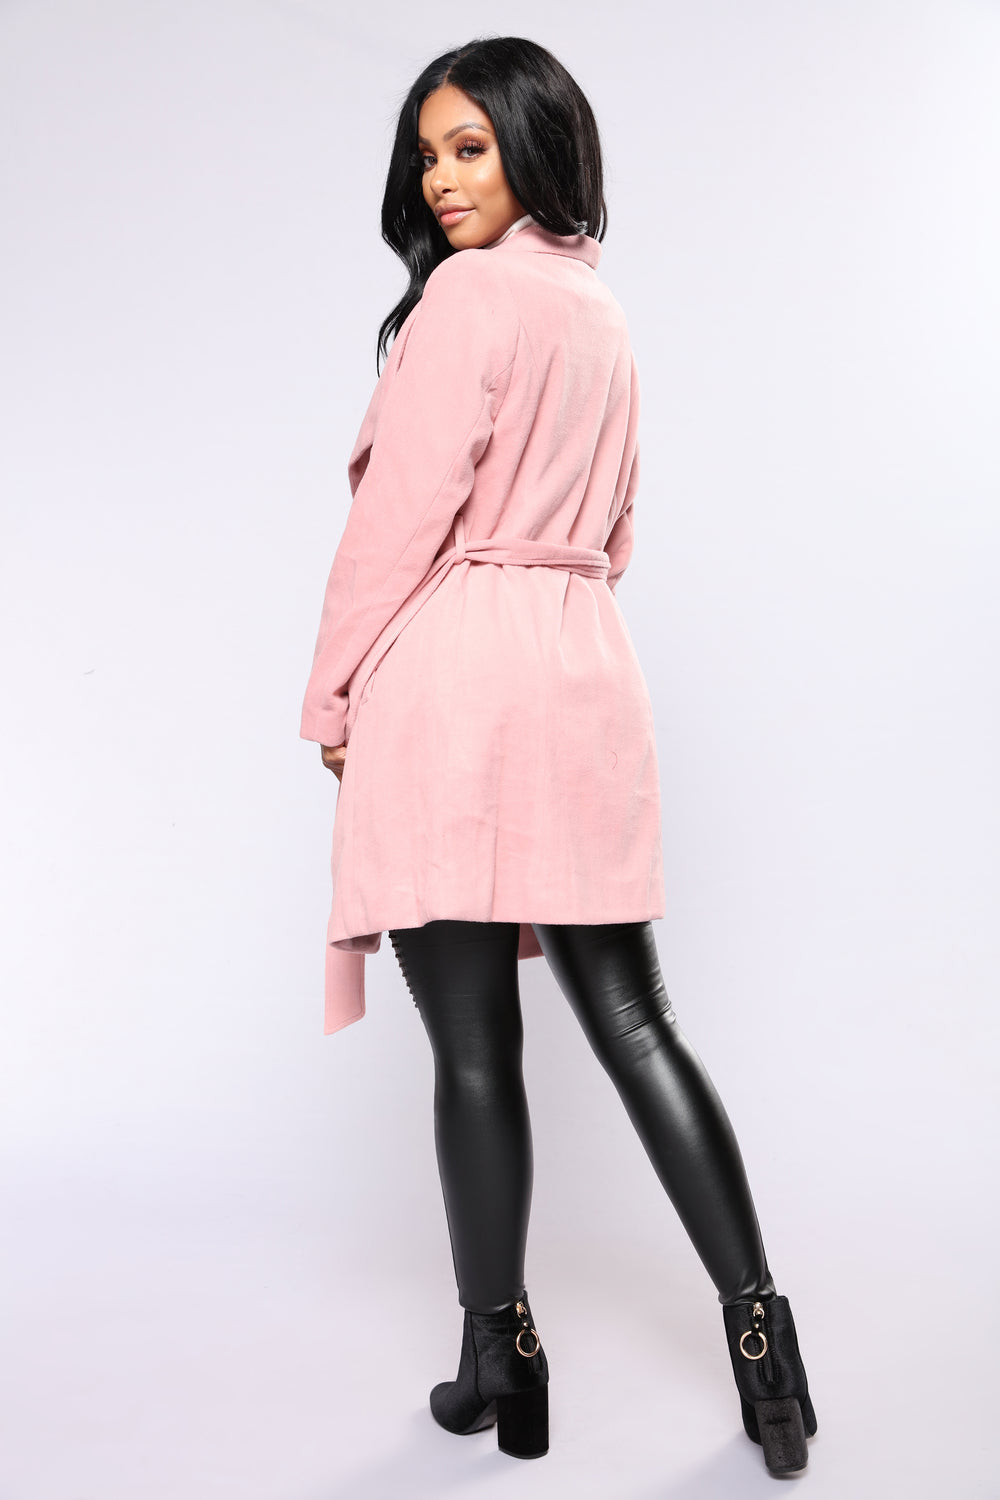 City Girl Vibes Coat - Pink